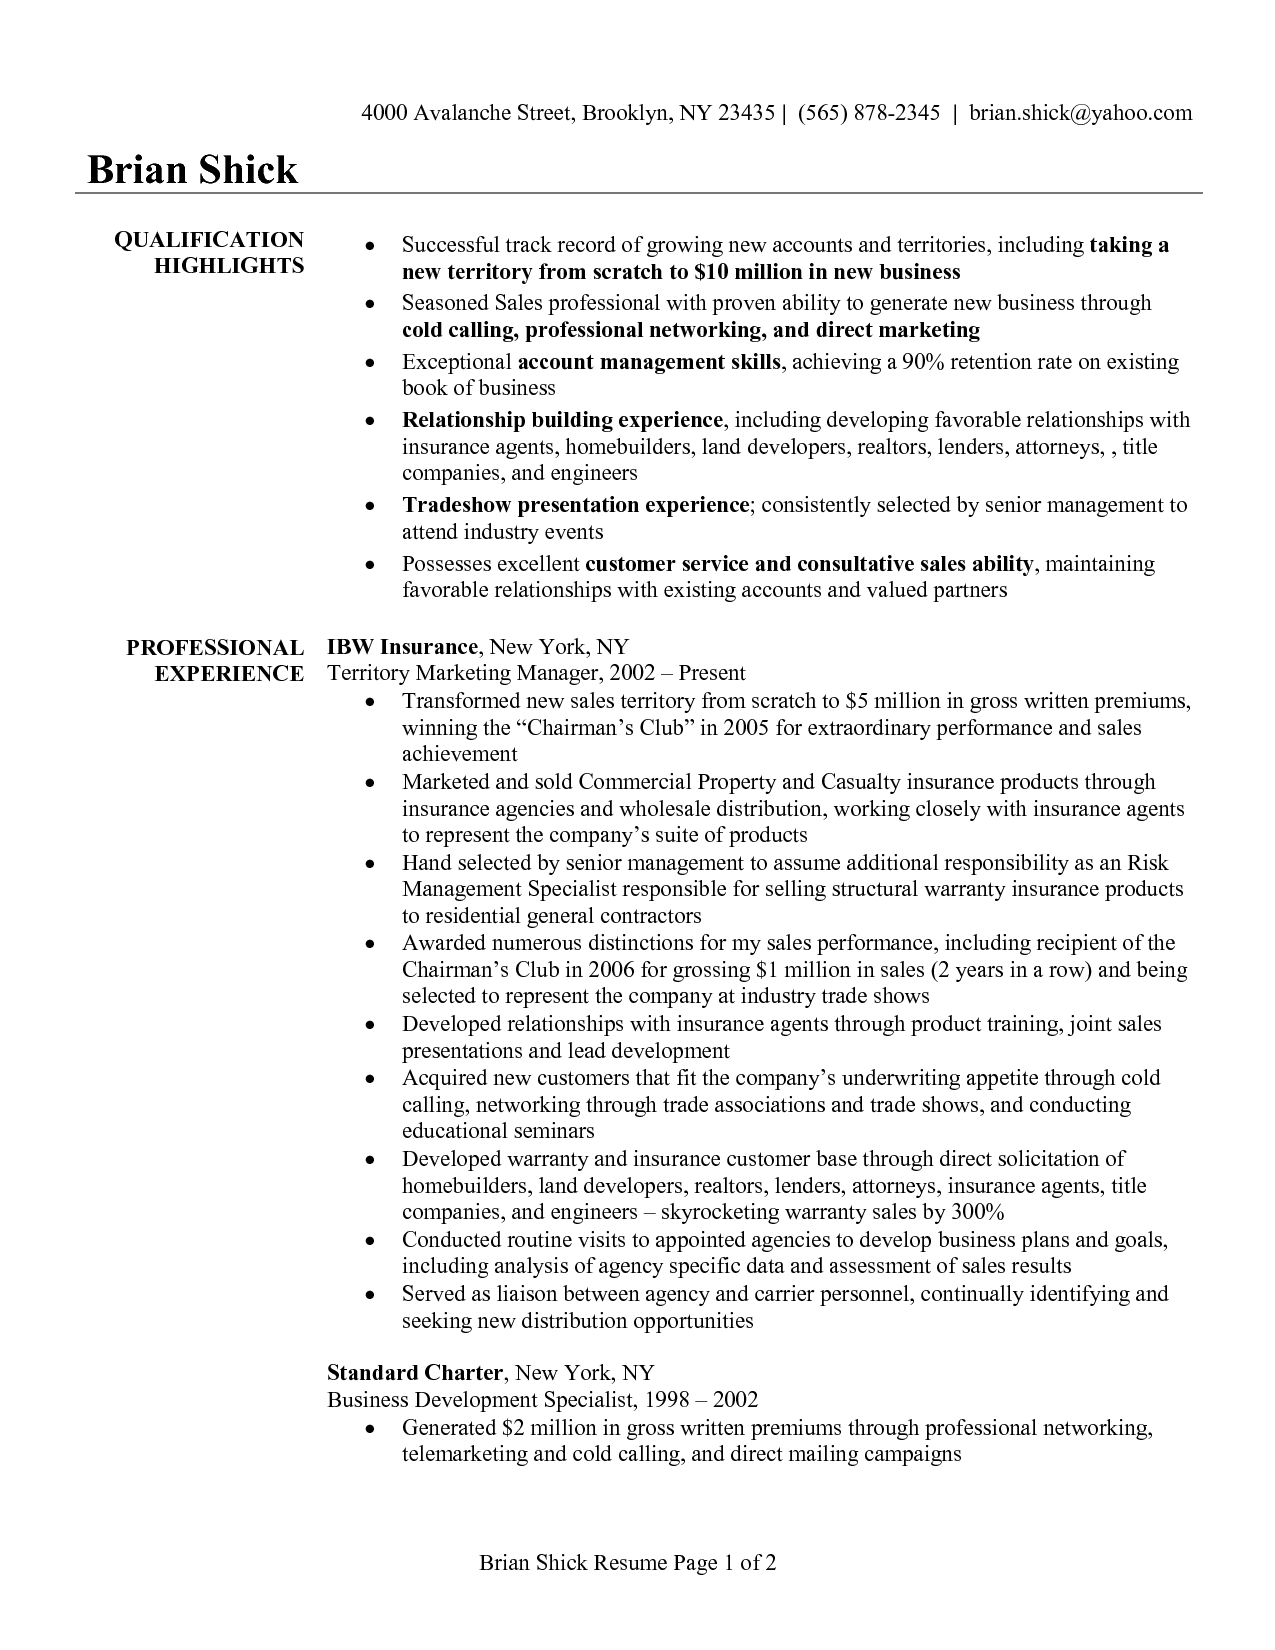 Marketing Resume Example Life Insurance Agent Resumes  Httpwwwjobresumewebsitelife